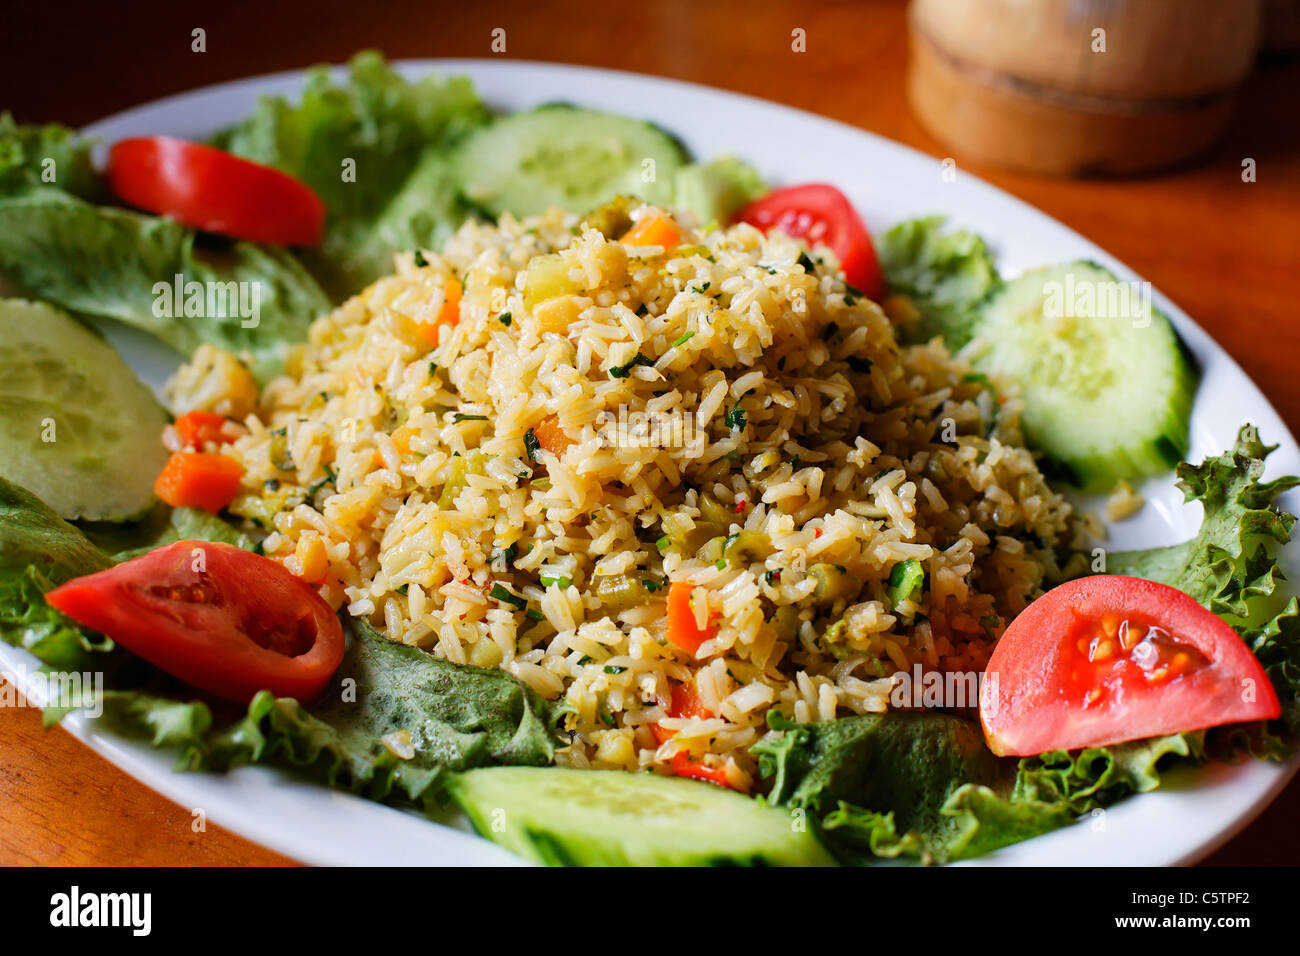 Costa Rica, Typical rice meal on plate - Stock Image